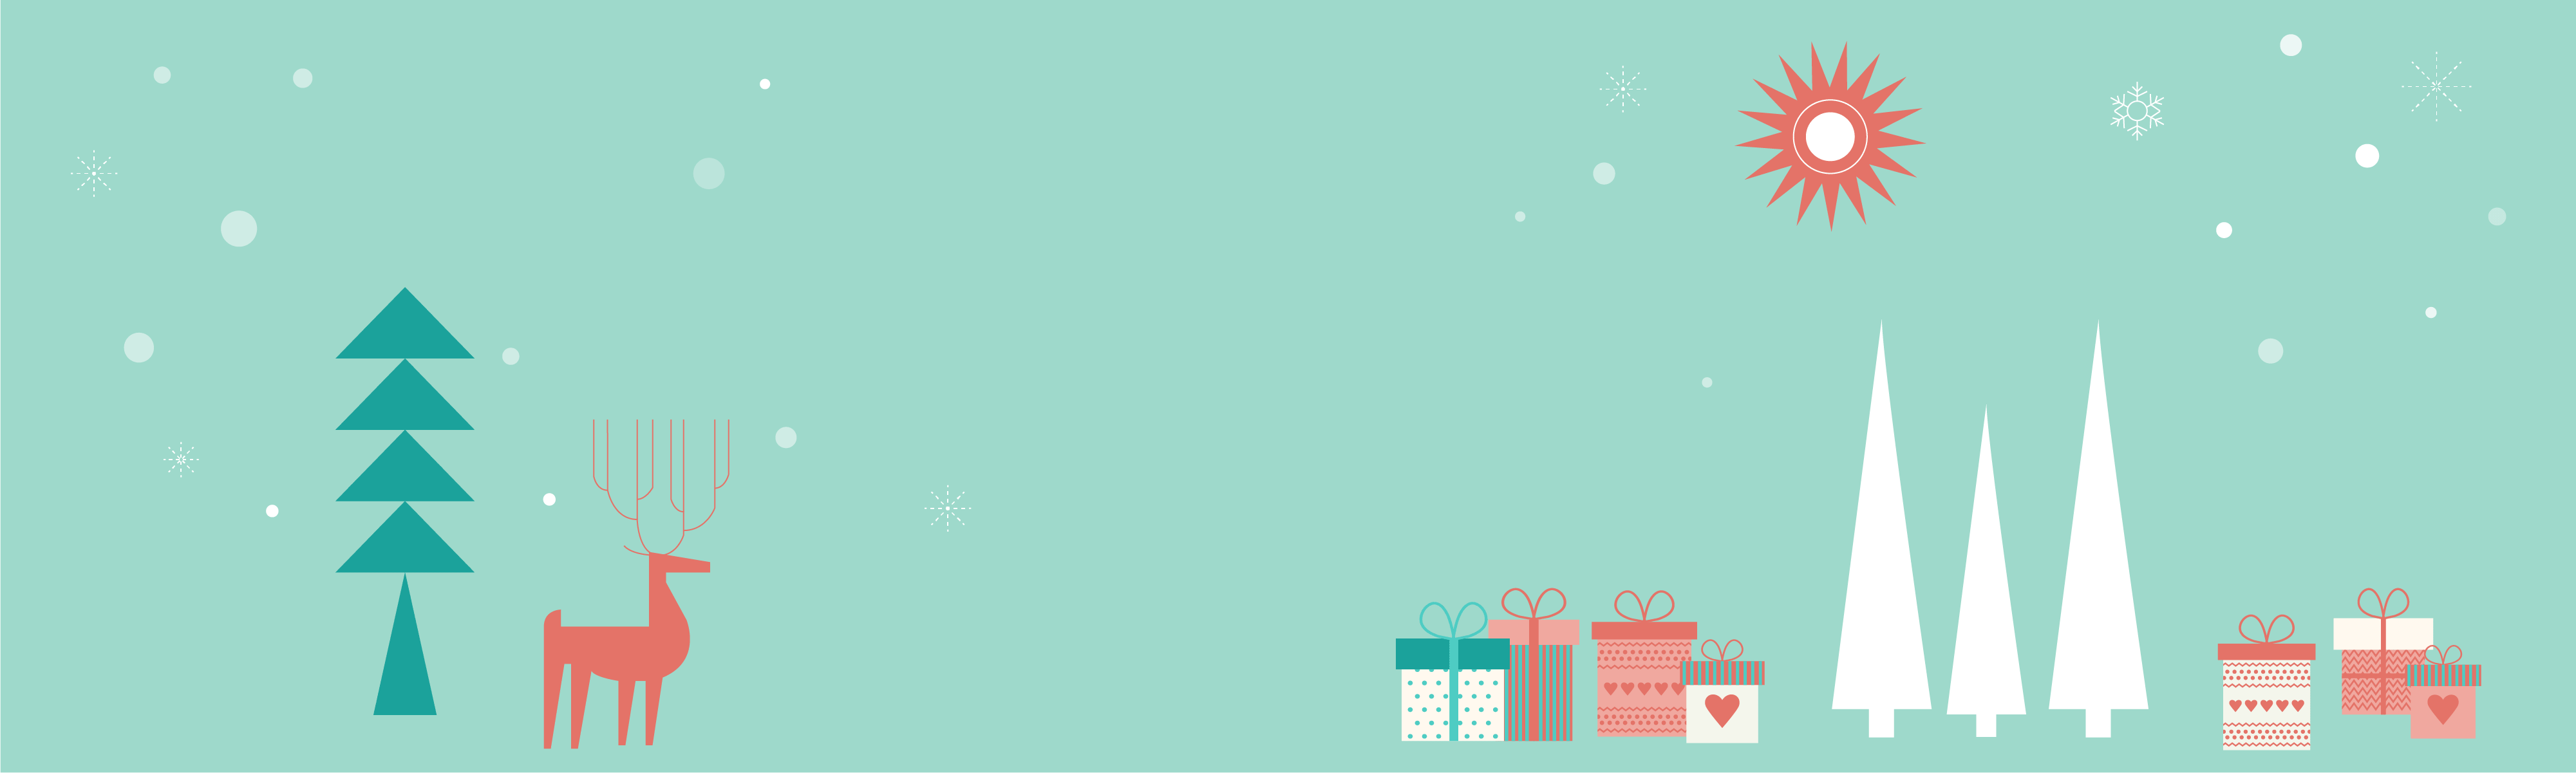 holiday-season-webinar-header3.png